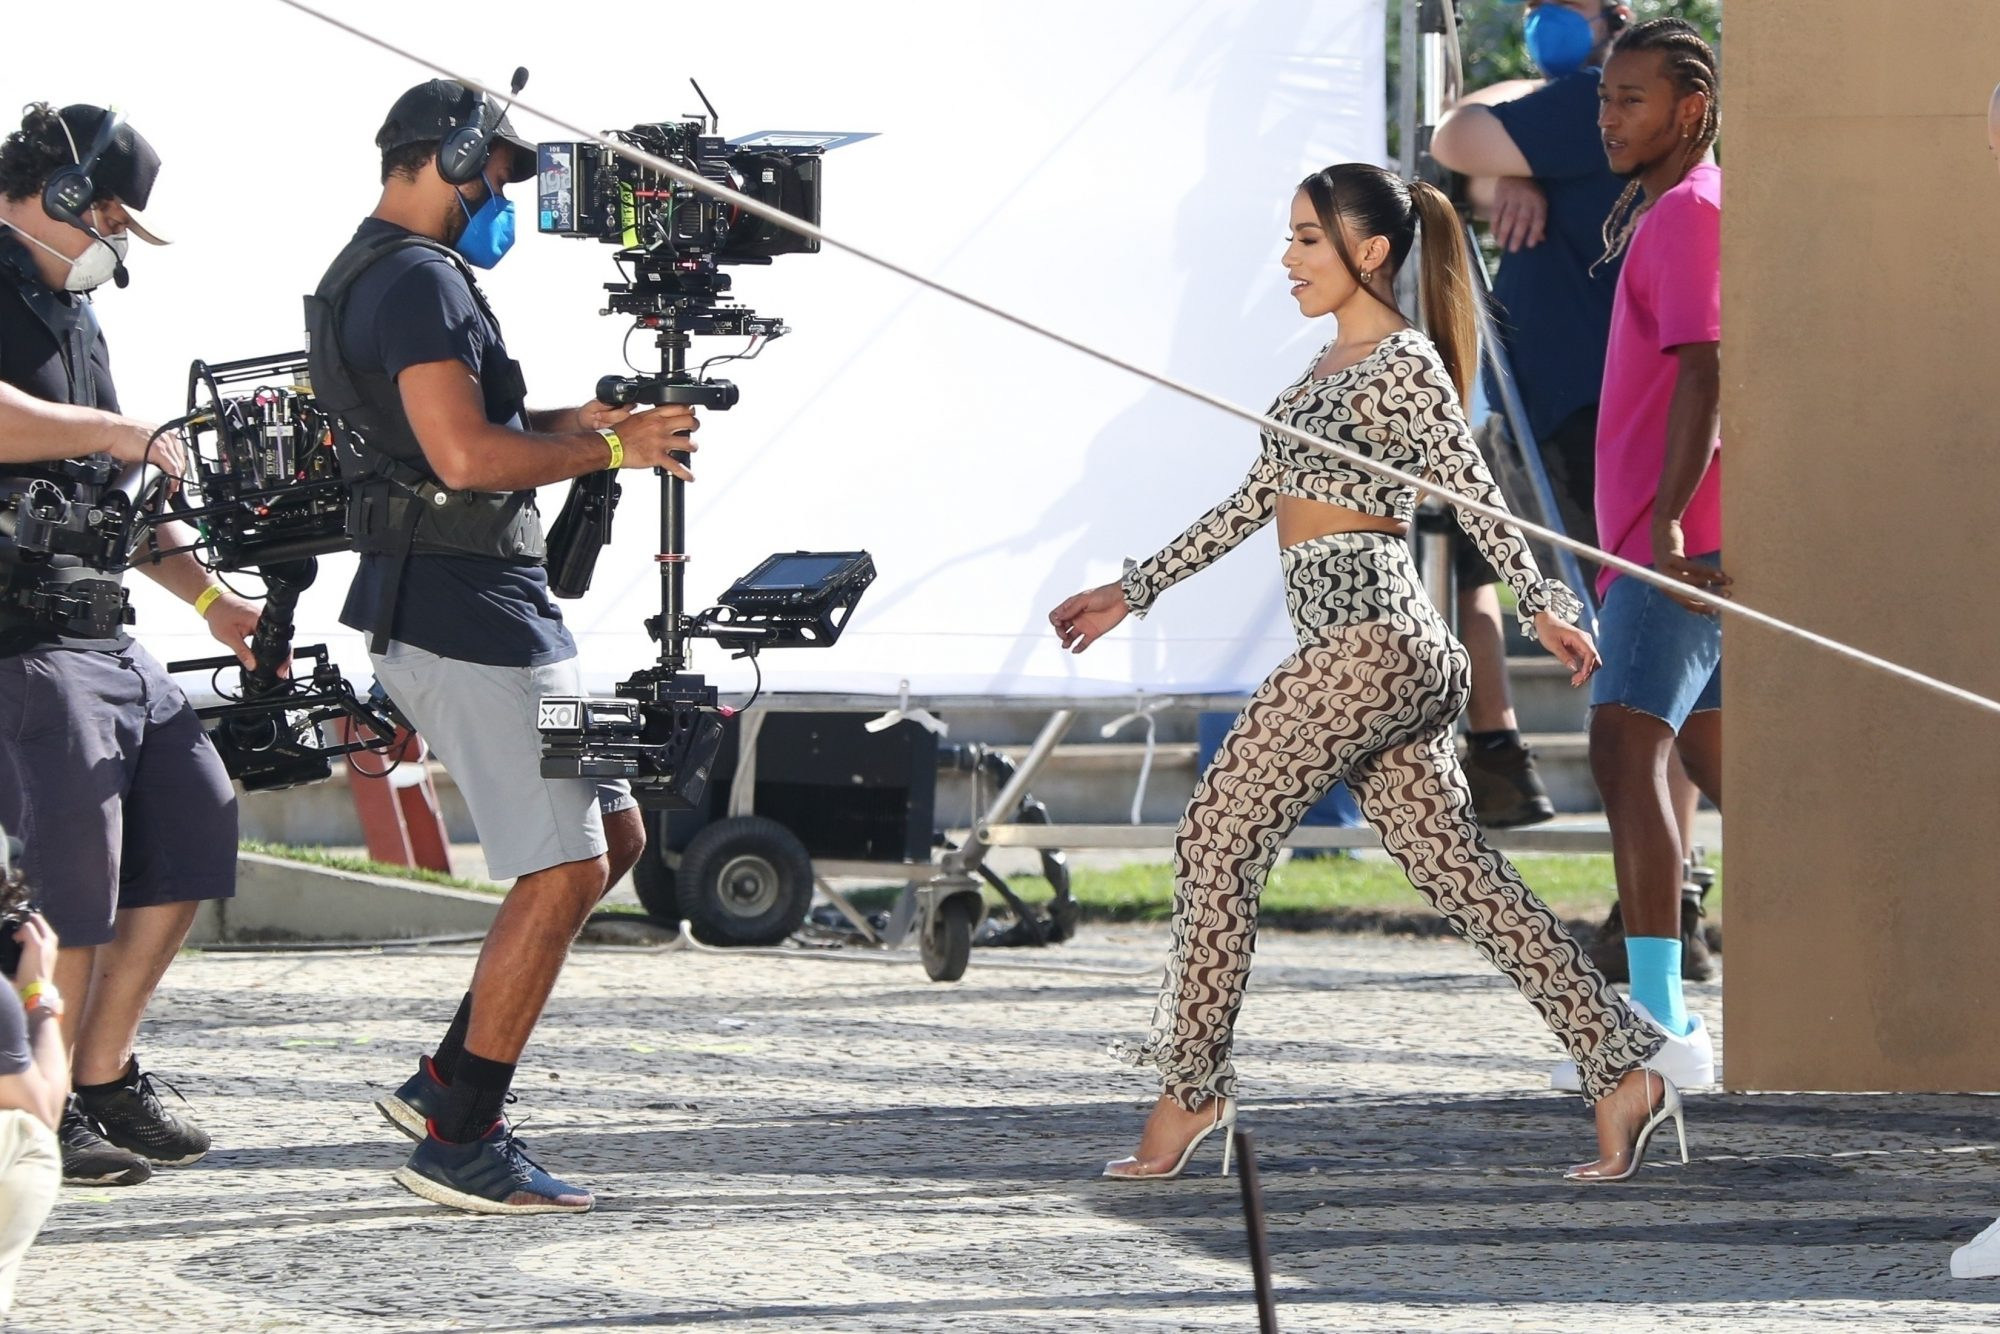 Anitta Dances and Films with Stunt Bike Riders for her Latest Project